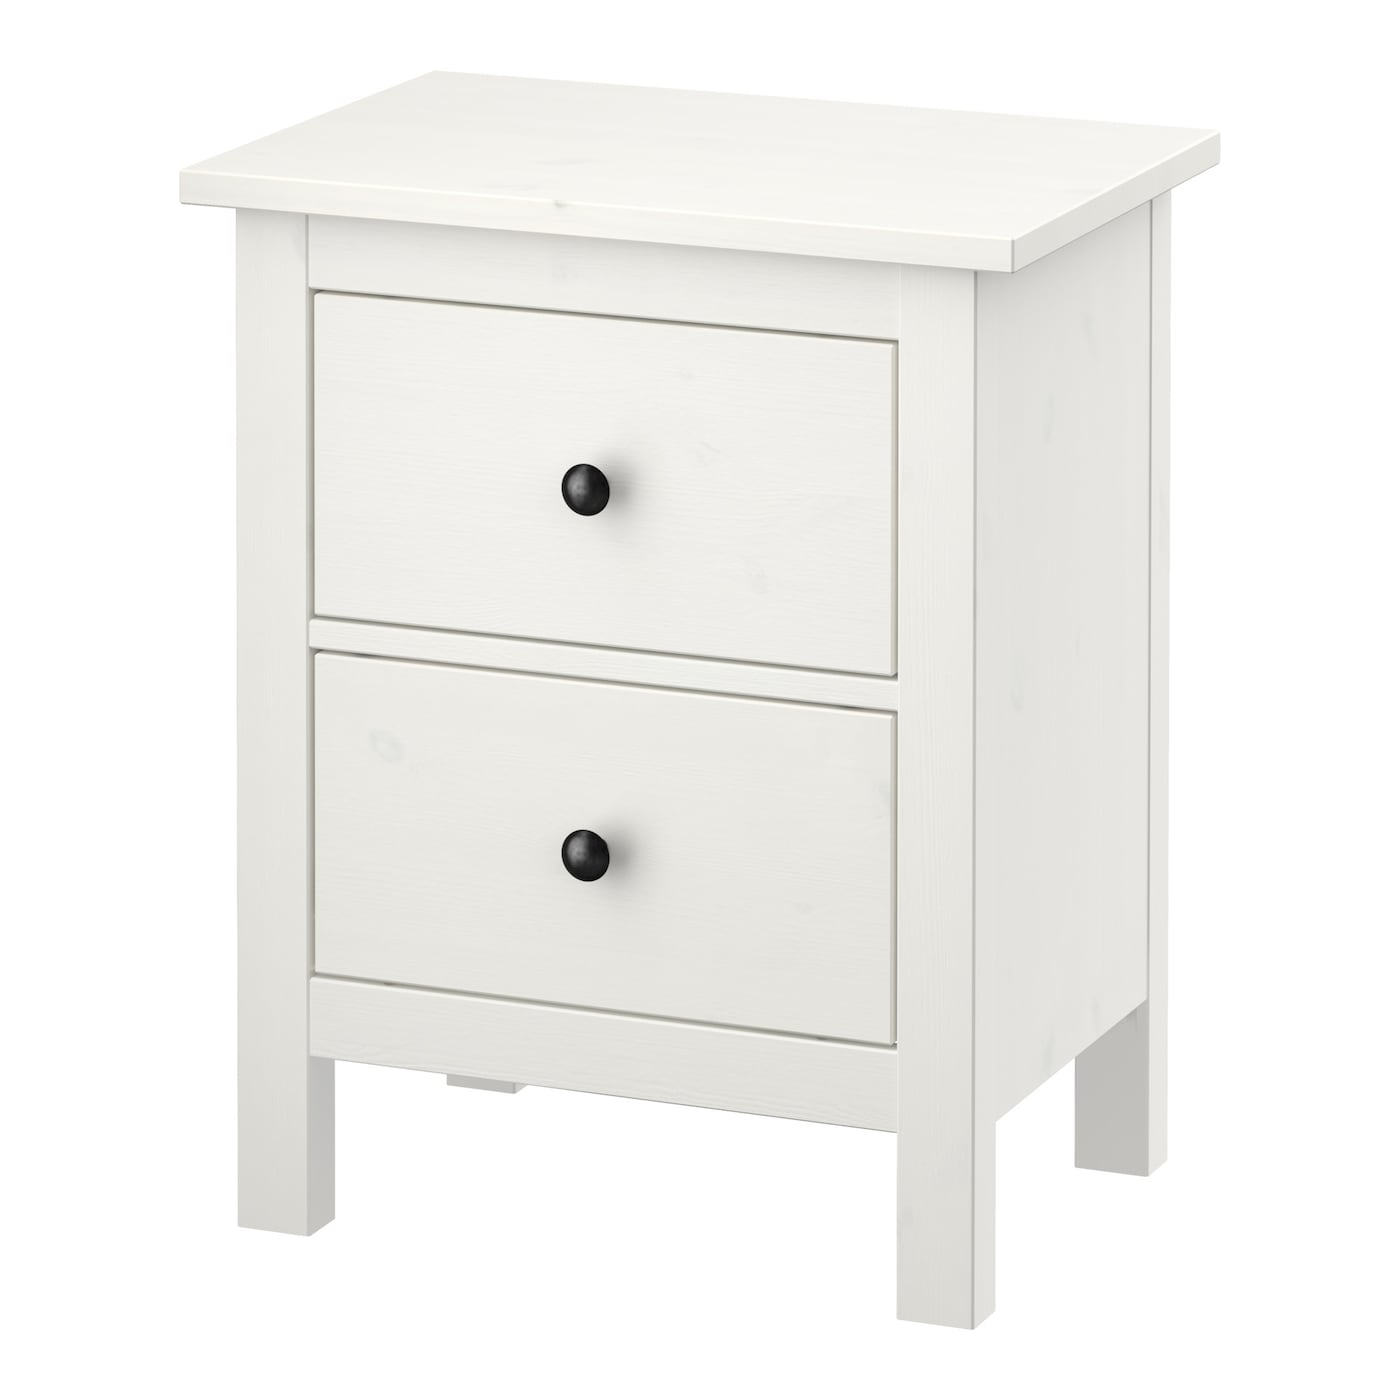 HEMNES Chest of 2 drawers White stain 54x66 cm - IKEA